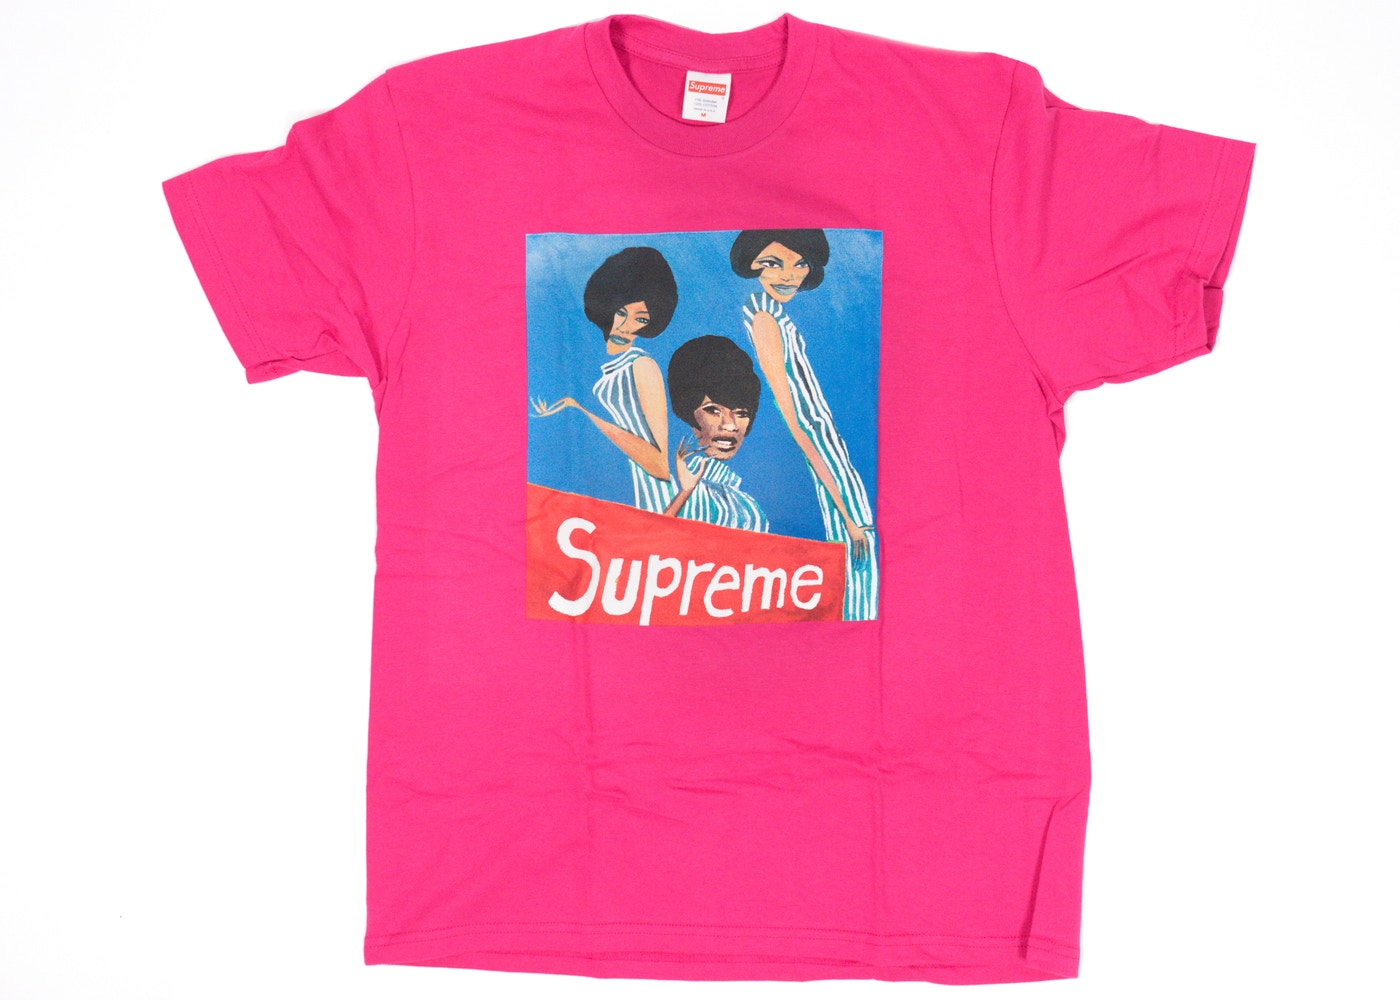 0c9b3f0a8dc8 Buy & Sell Supreme Streetwear - New Lowest Asks